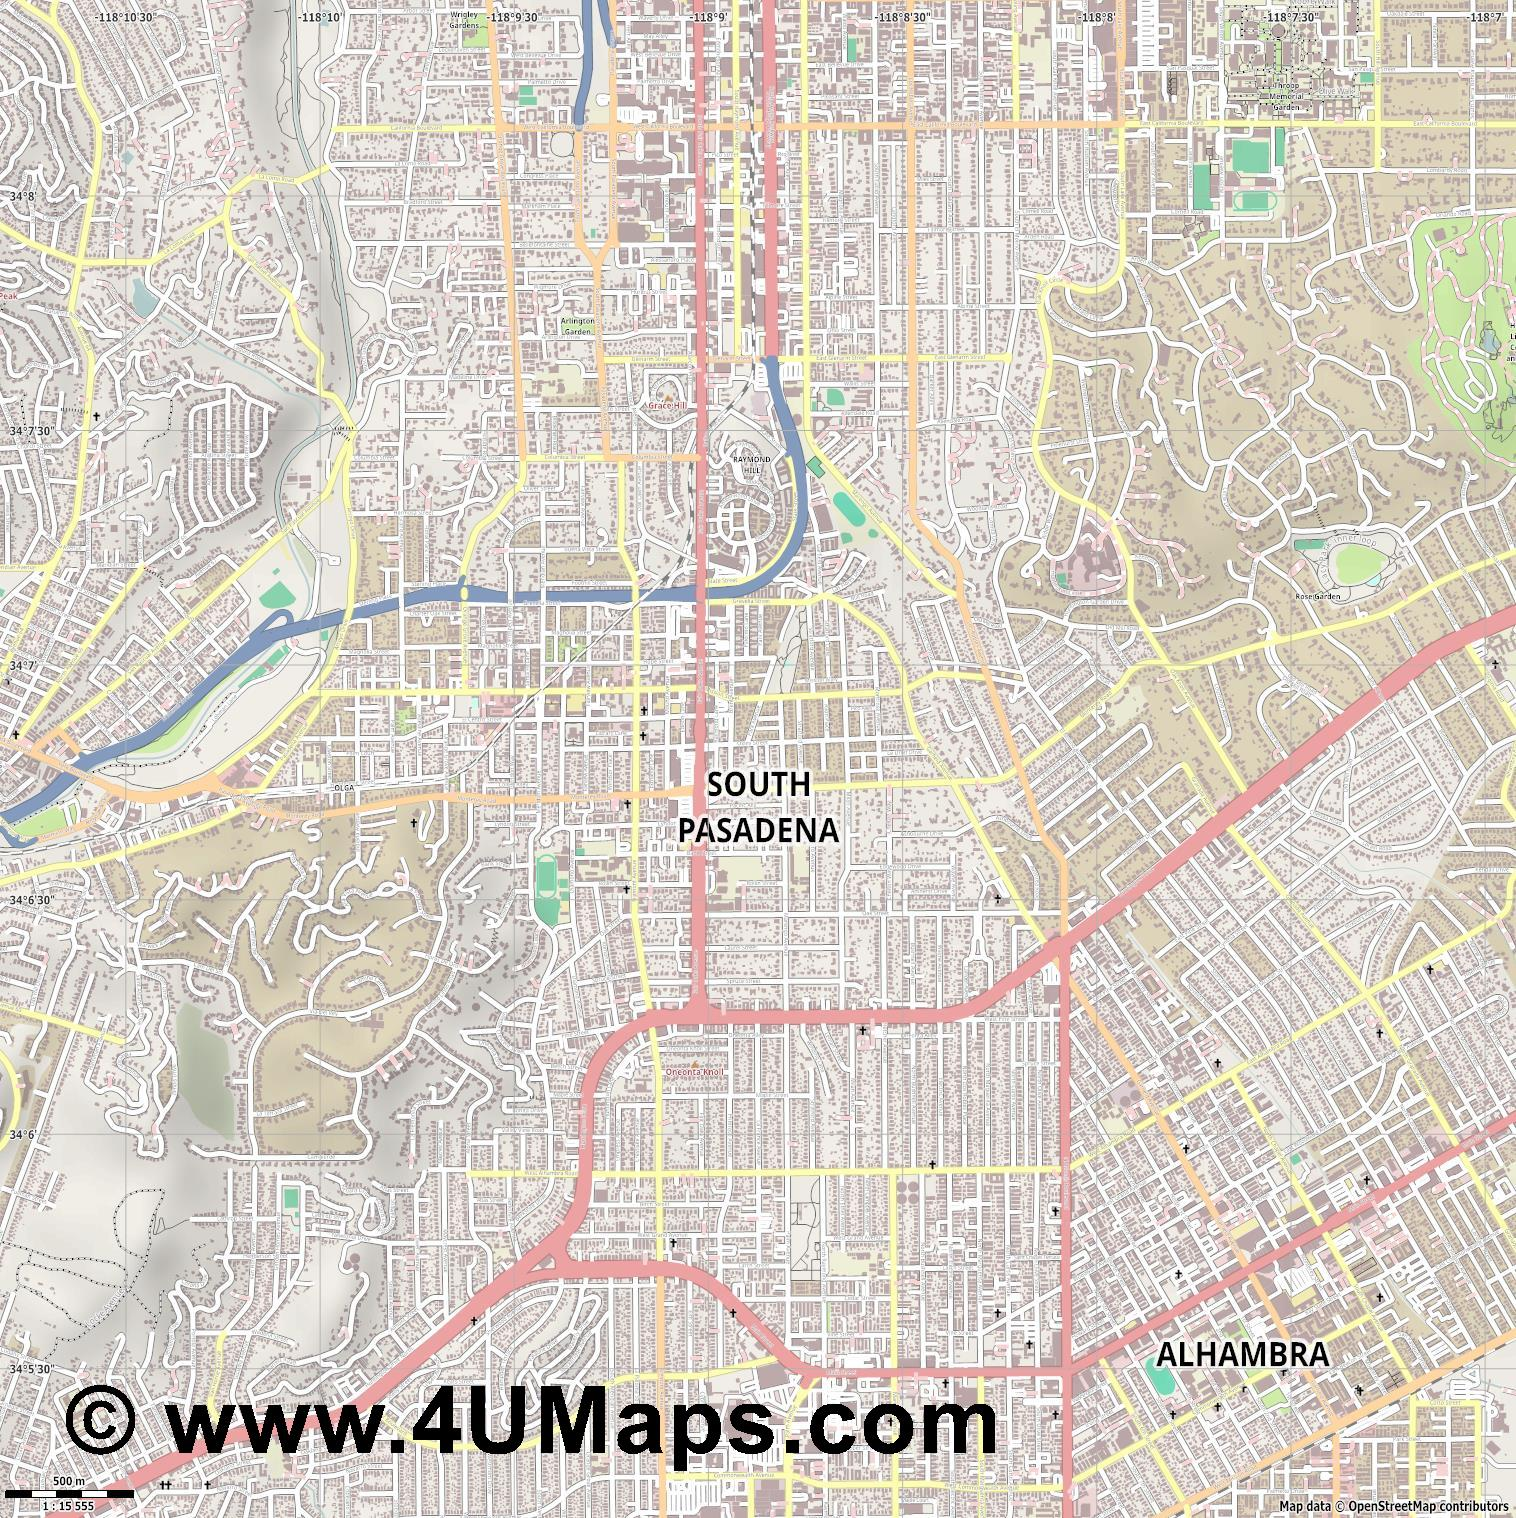 South Pasadena  jpg ultra high detail preview vector city map